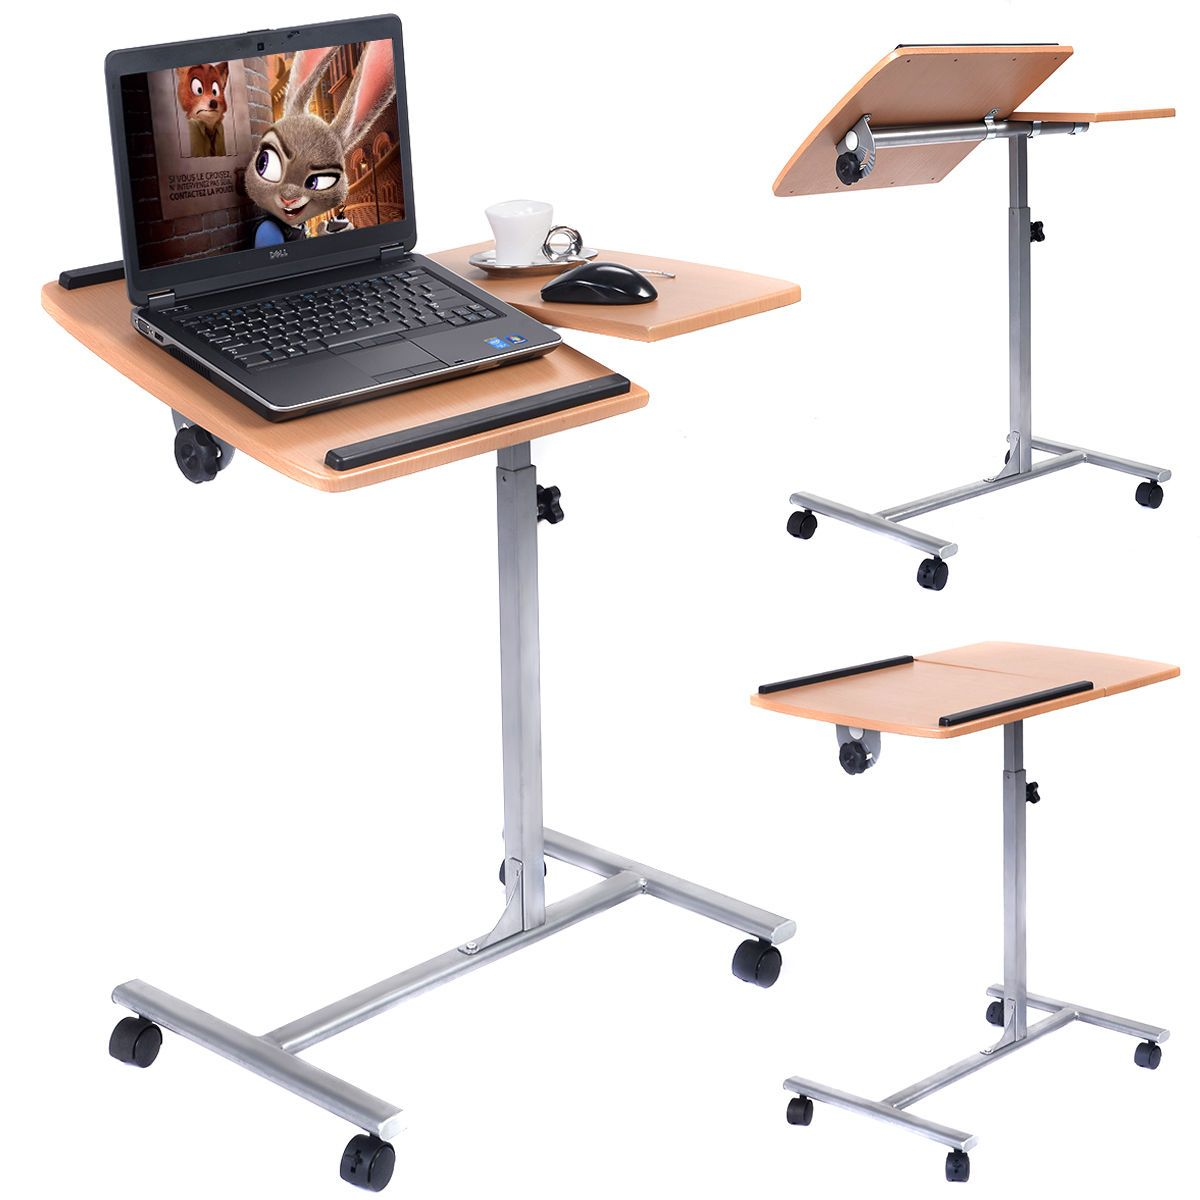 Adjustable Laptop Desk With Stand Holder And Wheels Adjustable